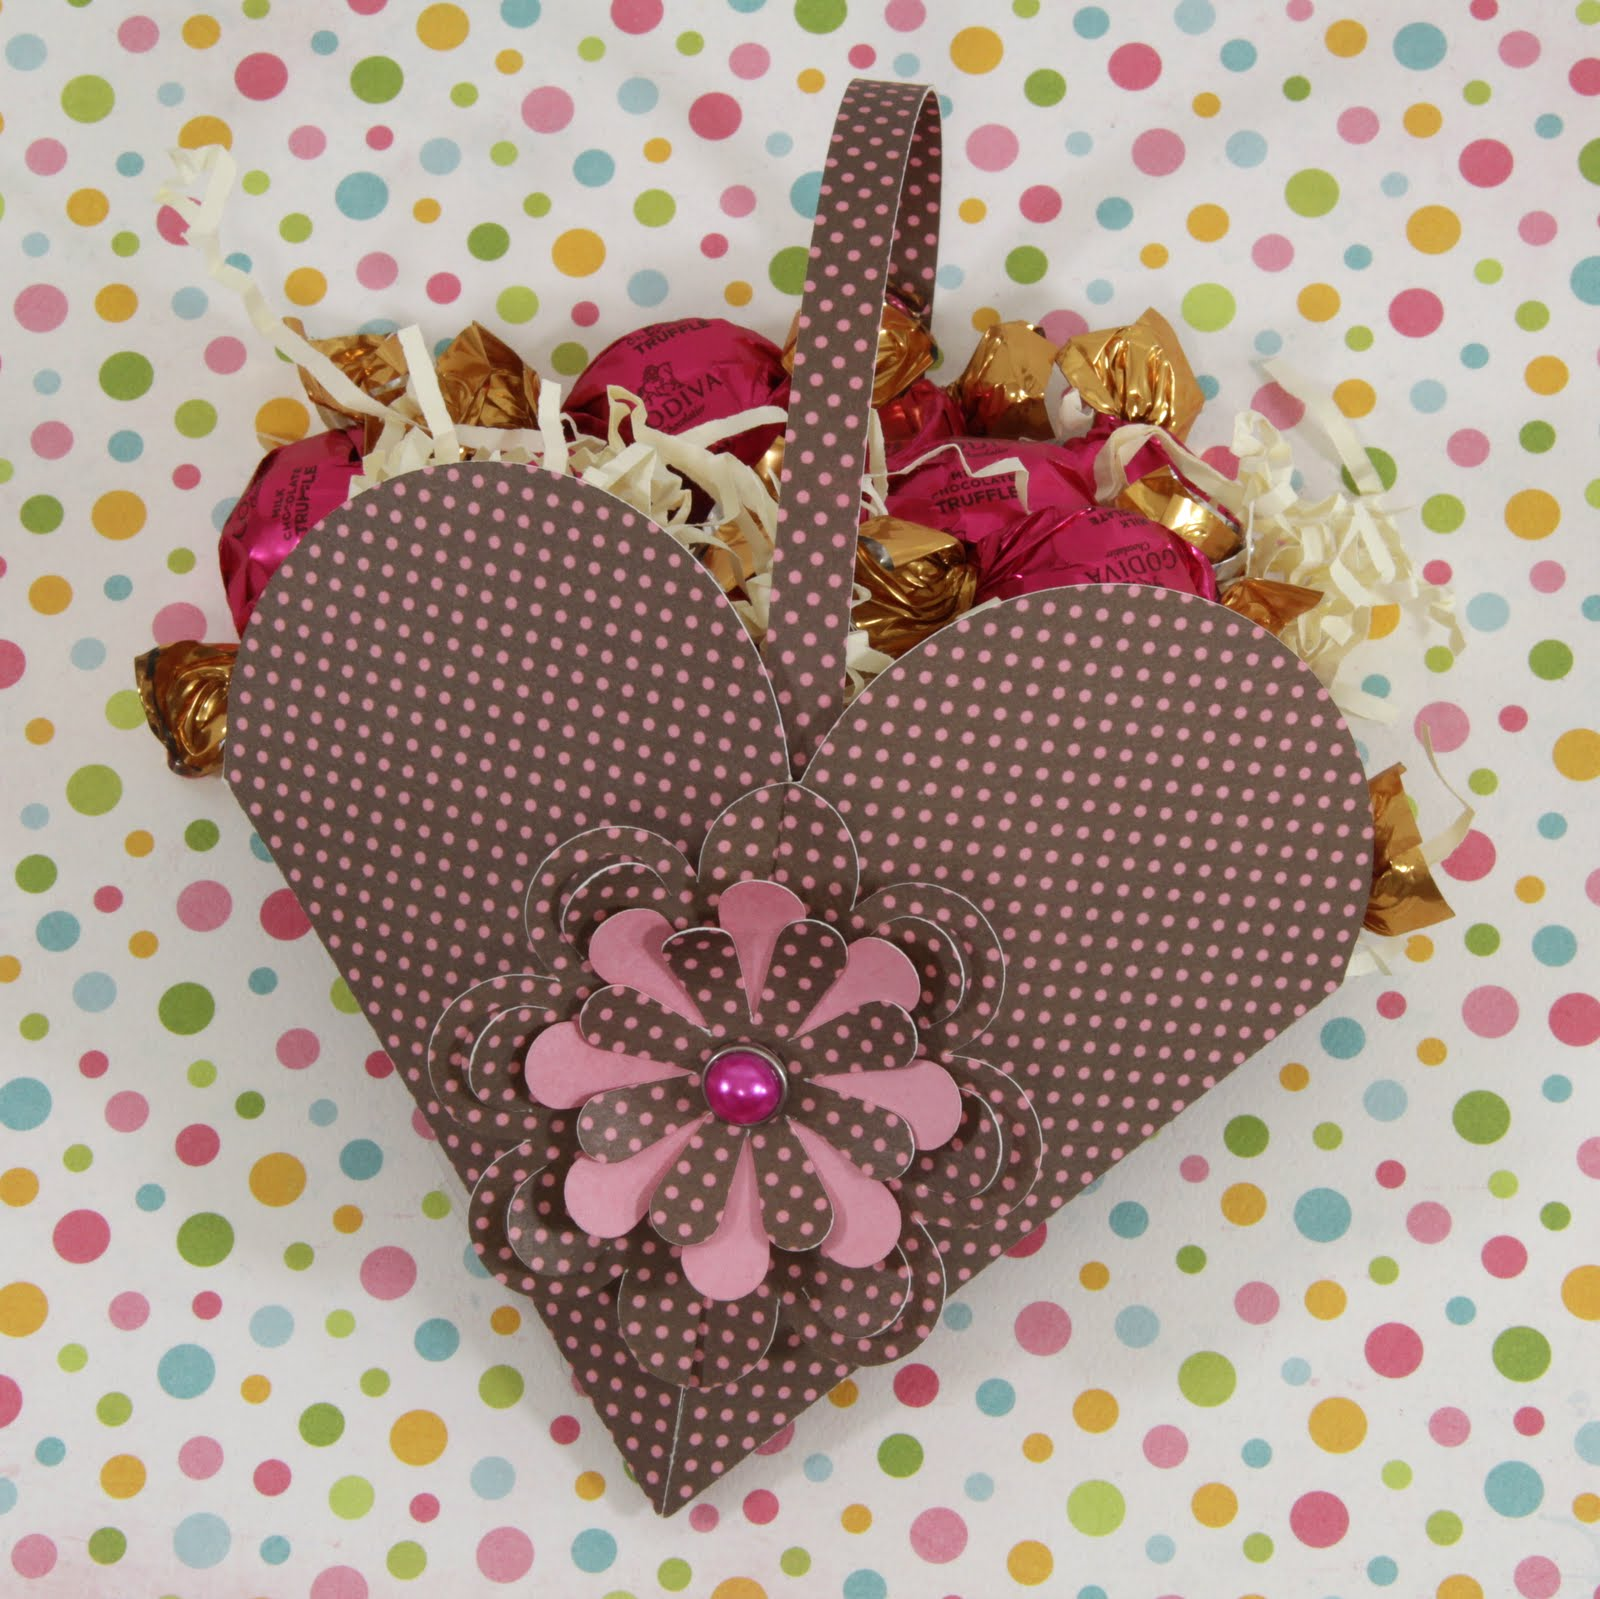 Samantha walkers imaginary world flower heart basket and cool flower heart basket and cool summer paper collection mightylinksfo